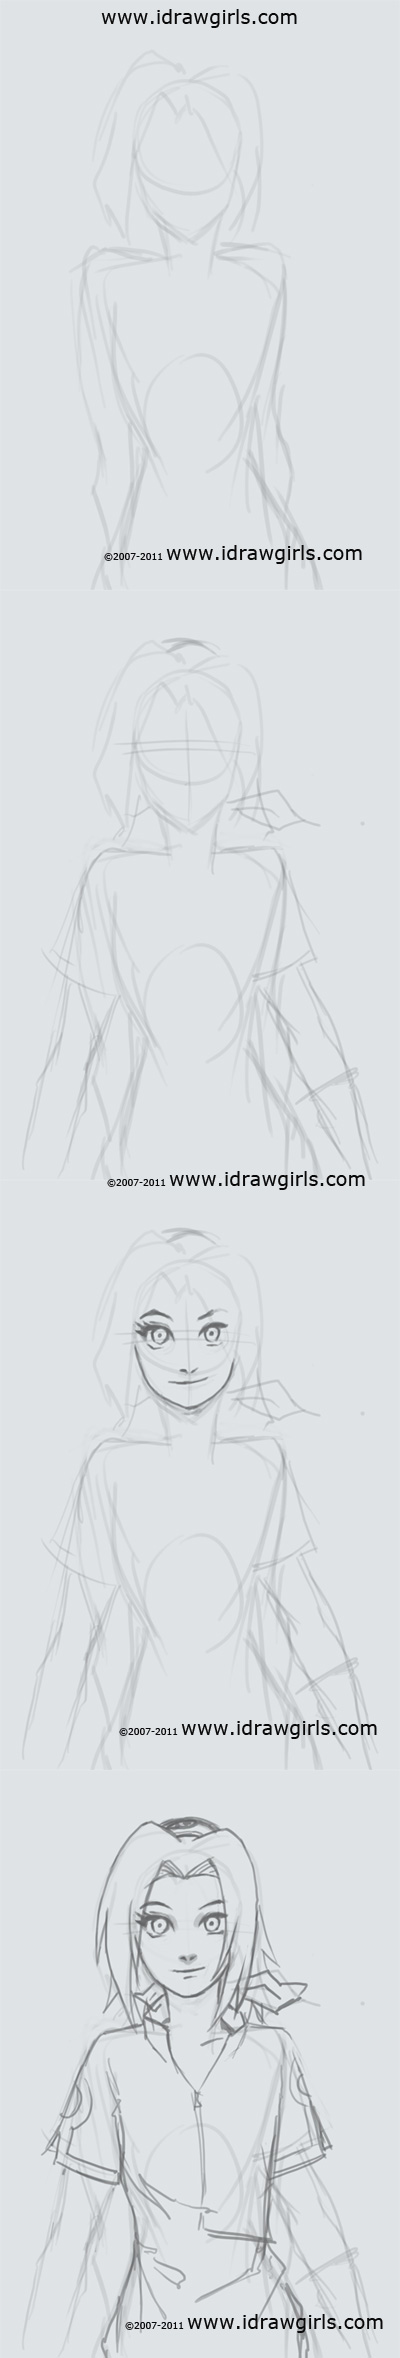 how to draw manga, Naruto, Sakura, anime girl, tutorial